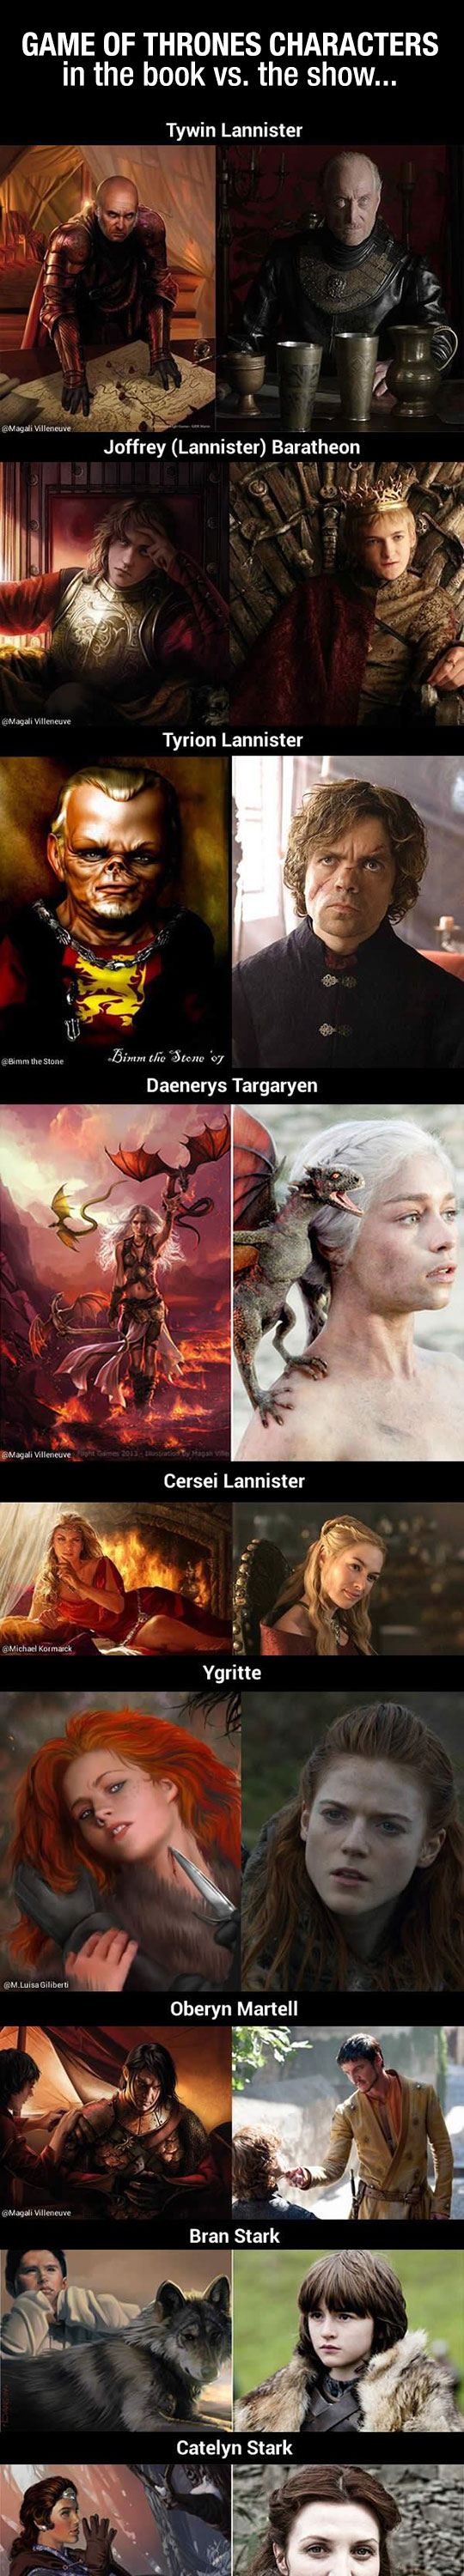 cool-GoT-characters-book-show